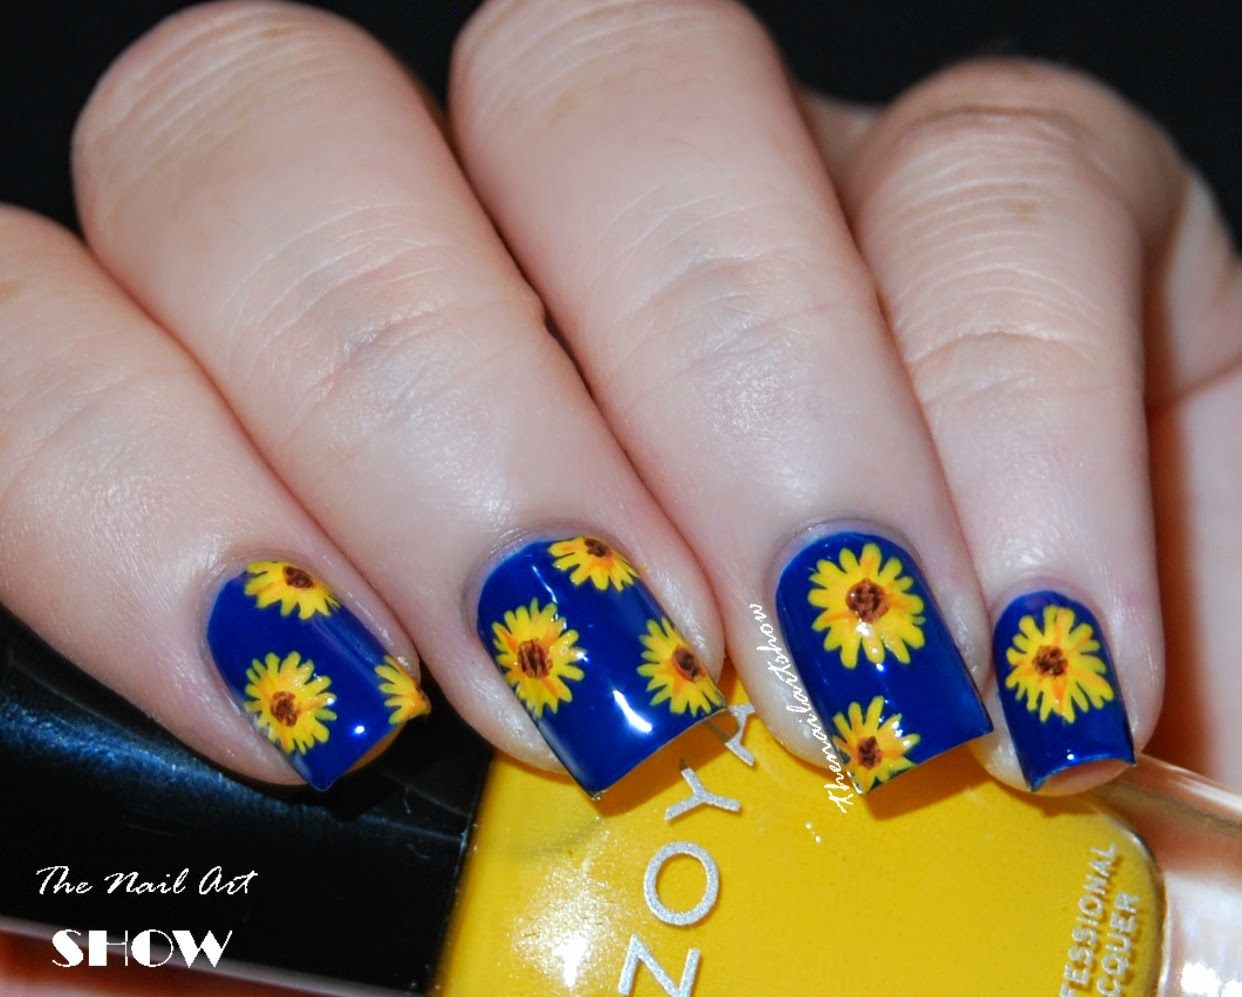 The Nail Art Show Flowers Of Sun